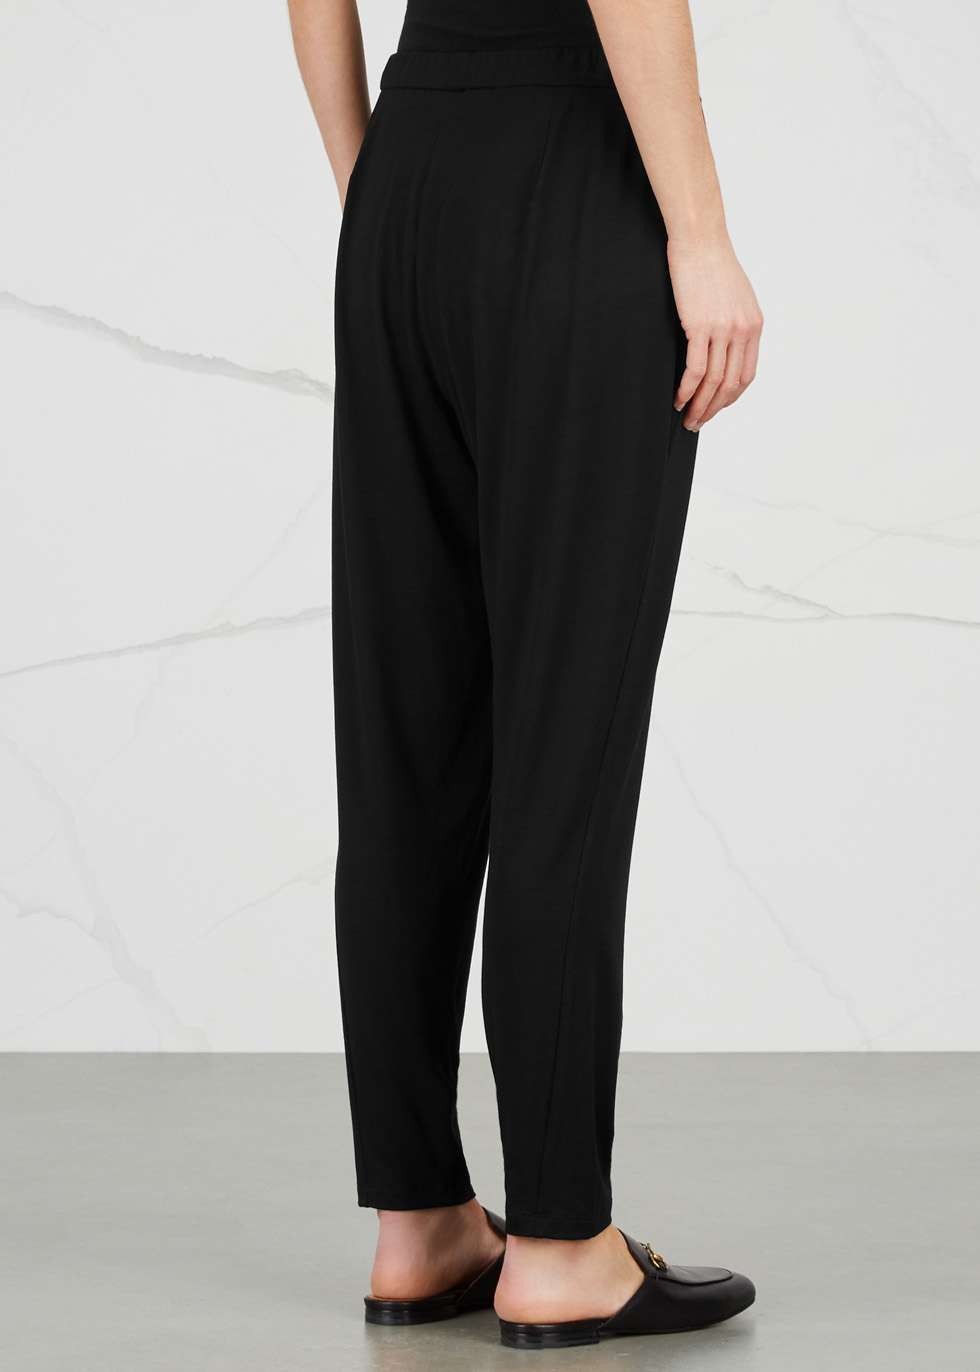 Black tapered jersey trousers - EILEEN FISHER